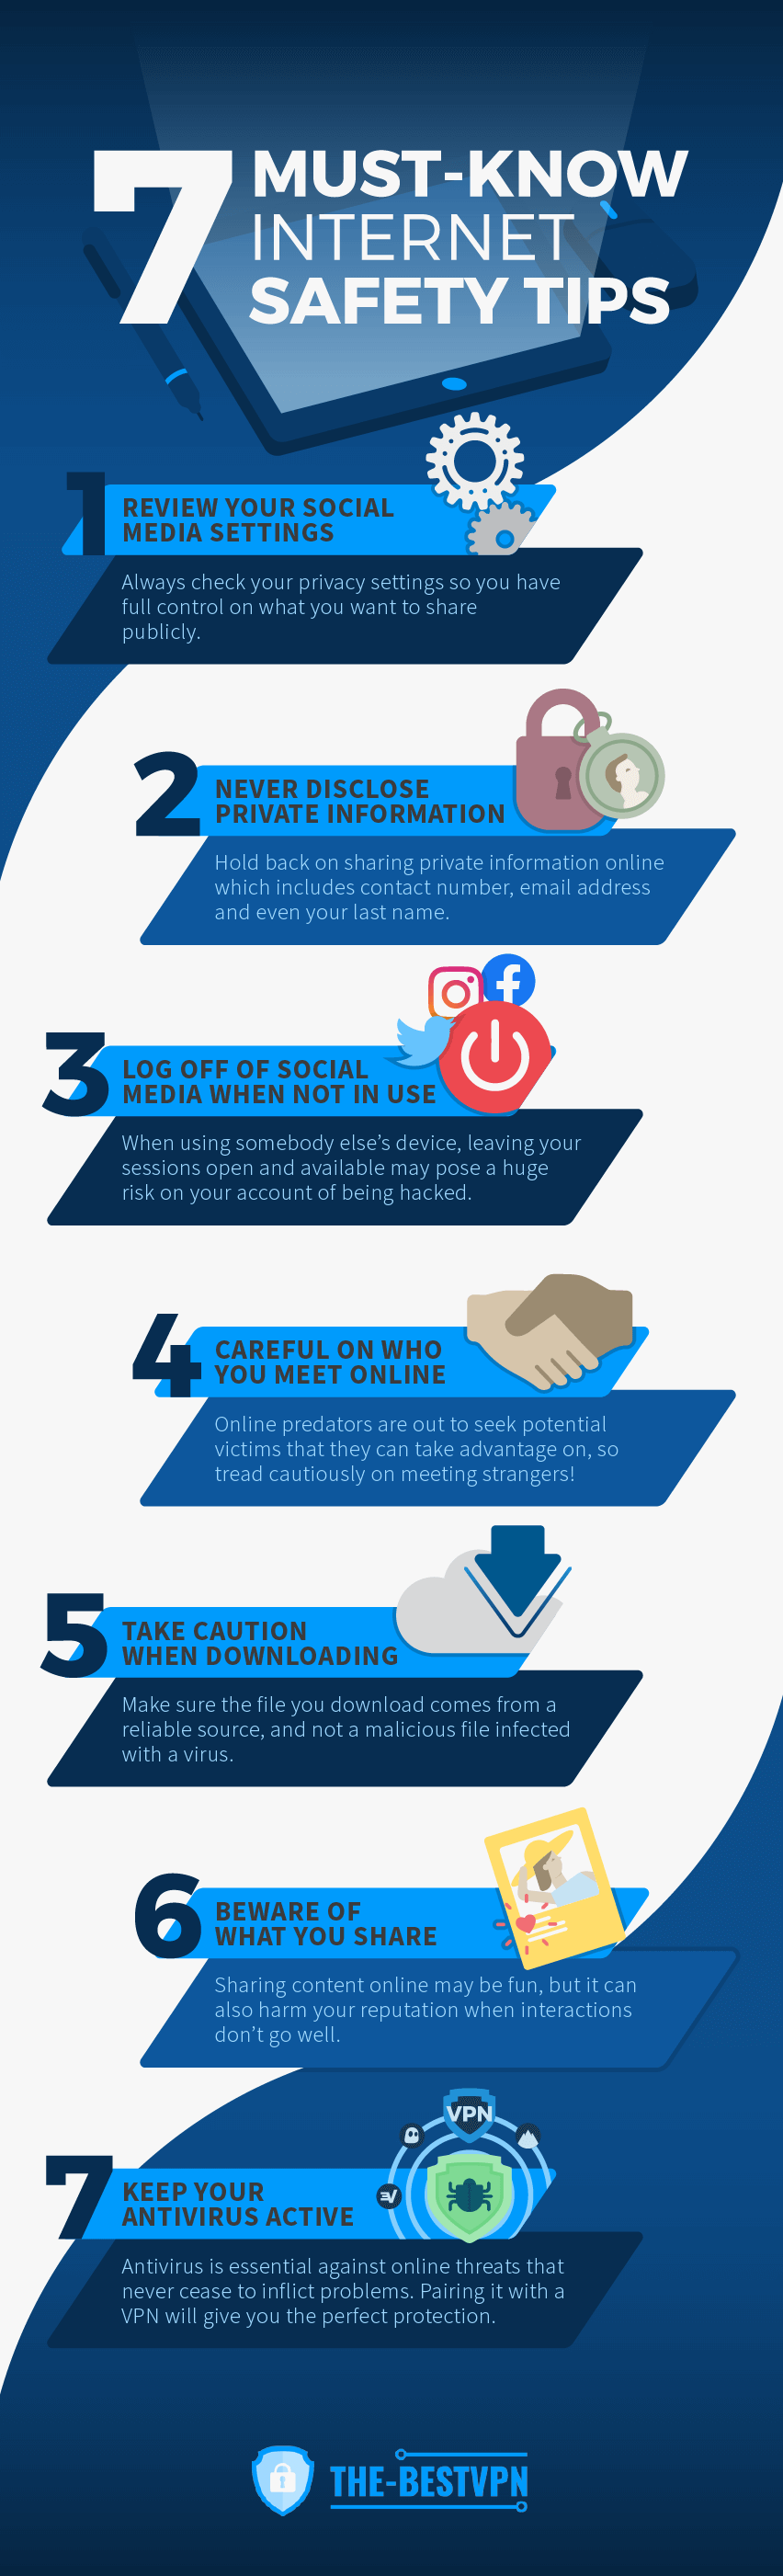 7_Must-Know_Internet_Safety_Tips_infographic